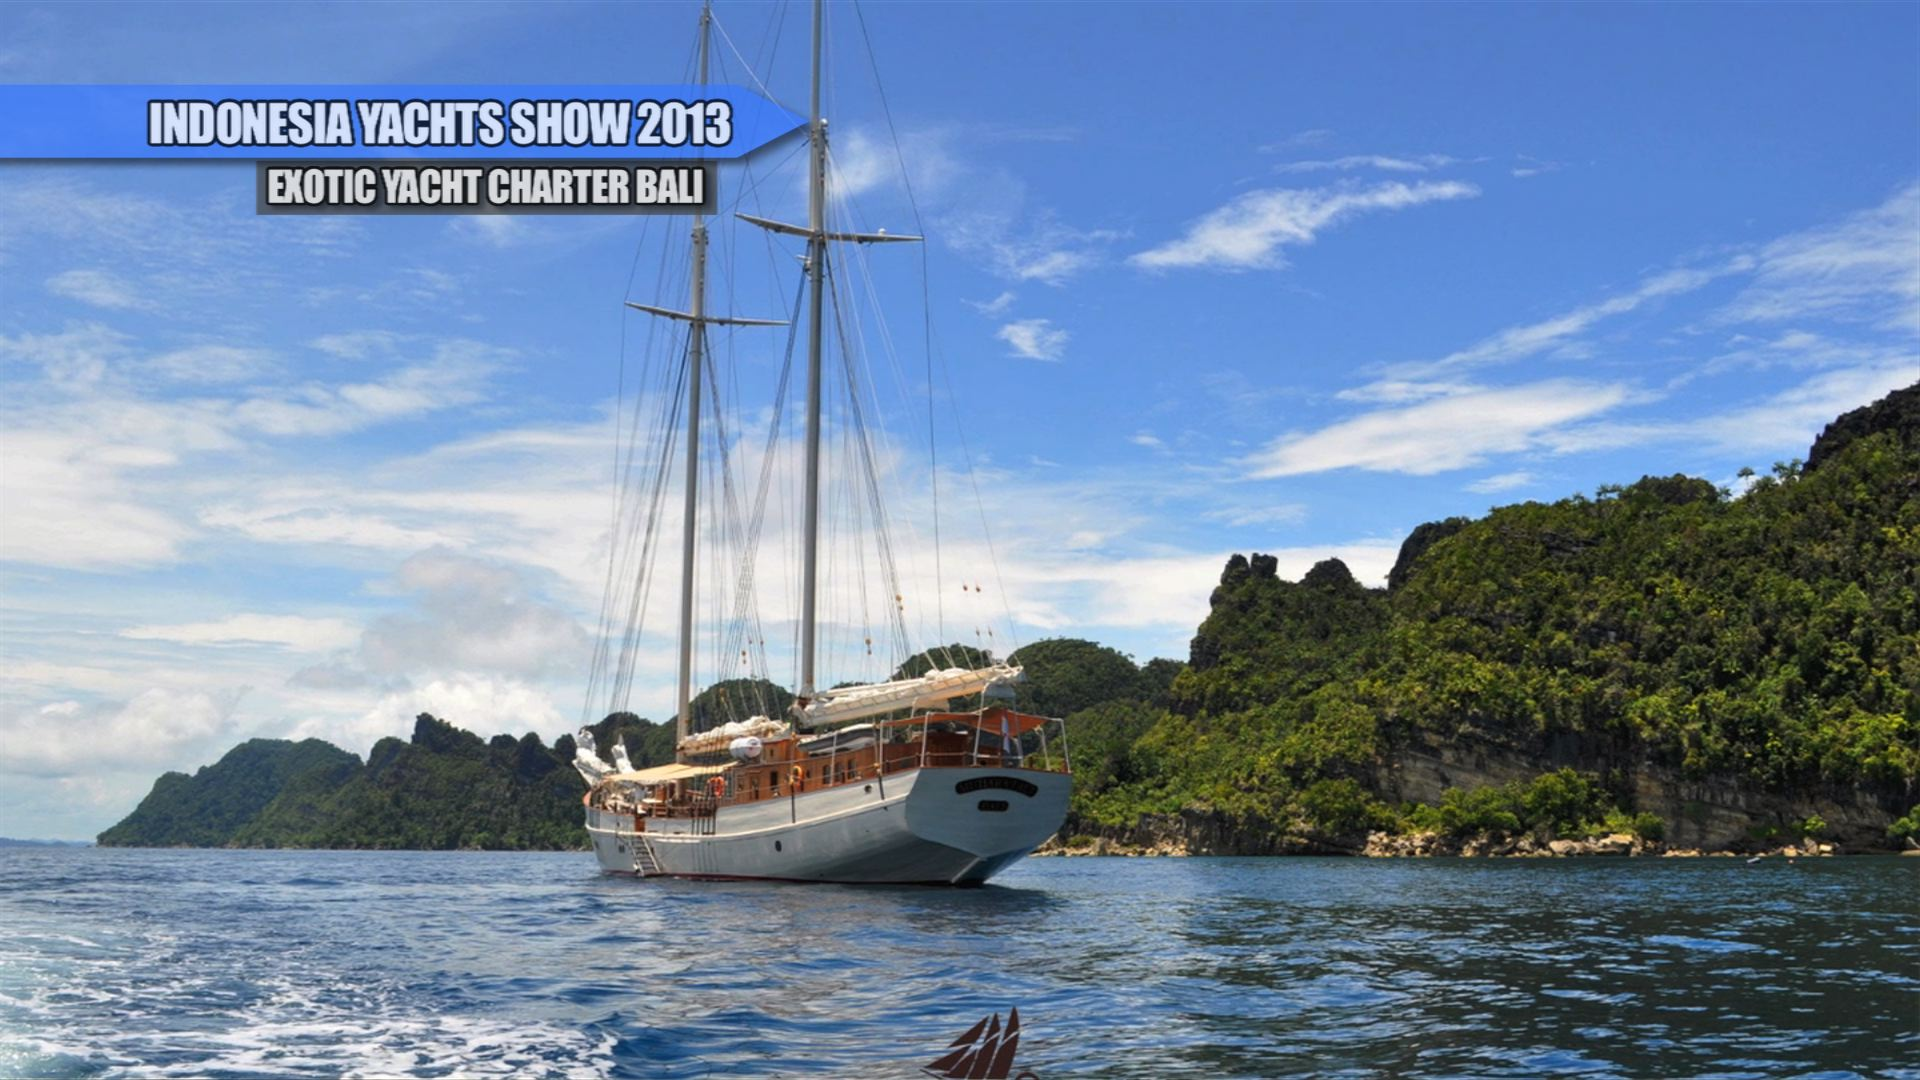 Exotic Yacht Charter Bali (Indonesia Yachts Show 2013)